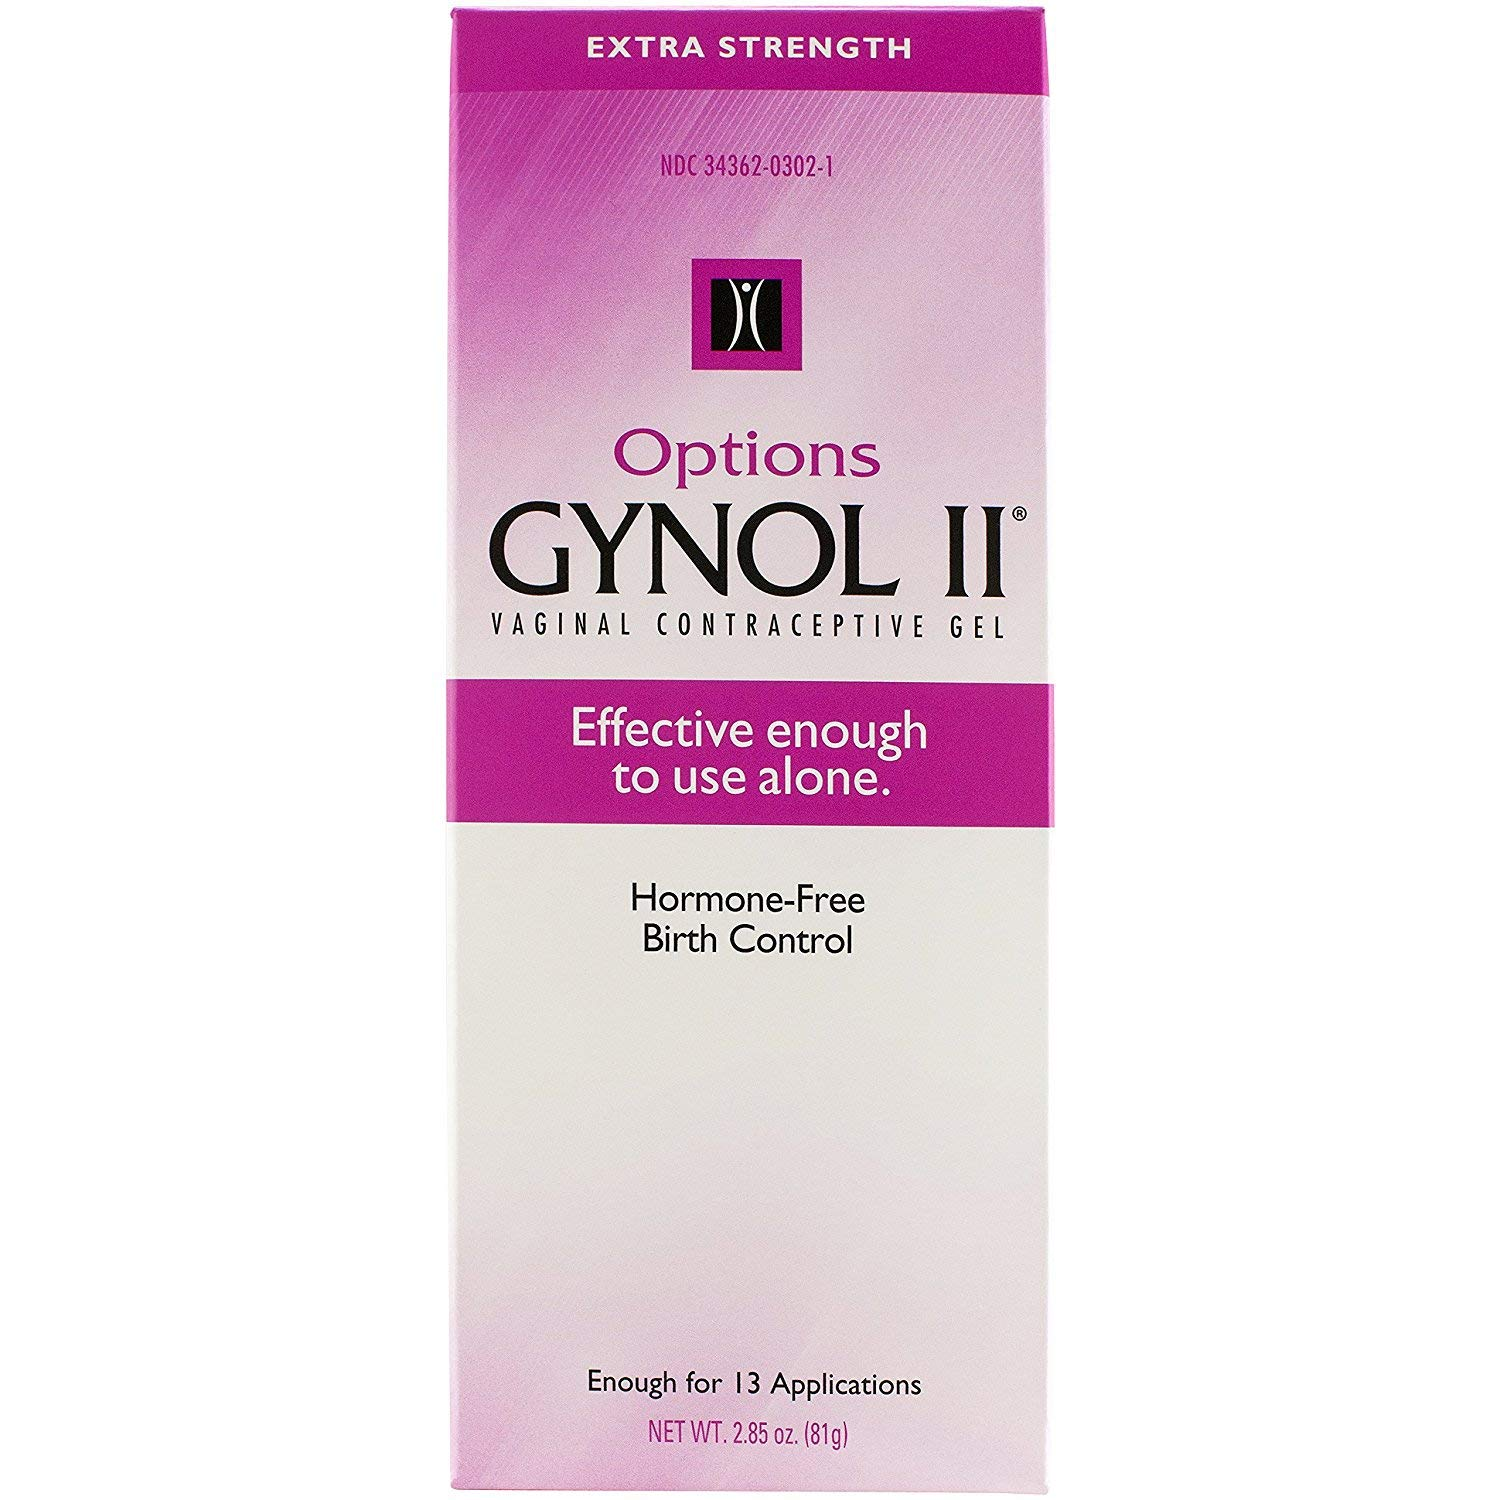 Options Gynol II Vagina Contraceptive Jelly Extra Strength - 2.85 oz, Pack of 3 by OPTIONS